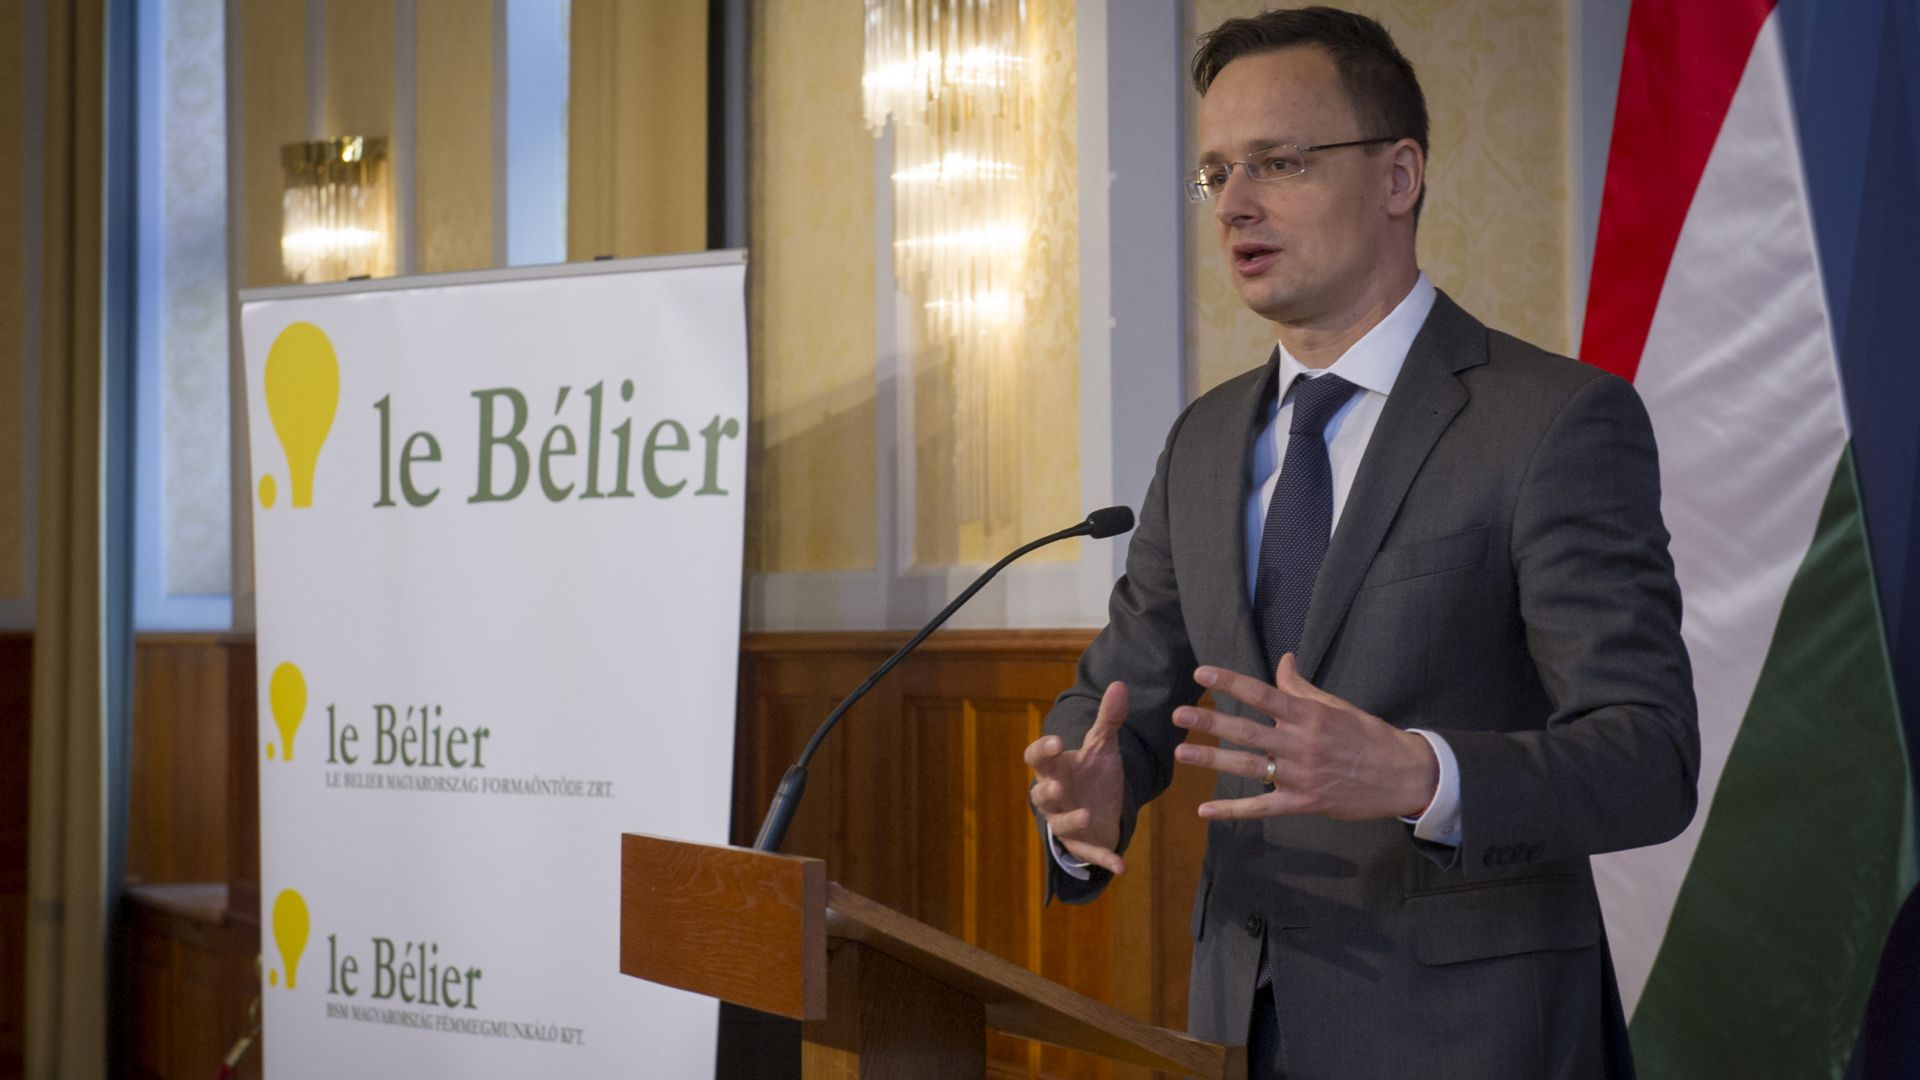 Le Bélier is carrying out developments in all three of its units in Hungary